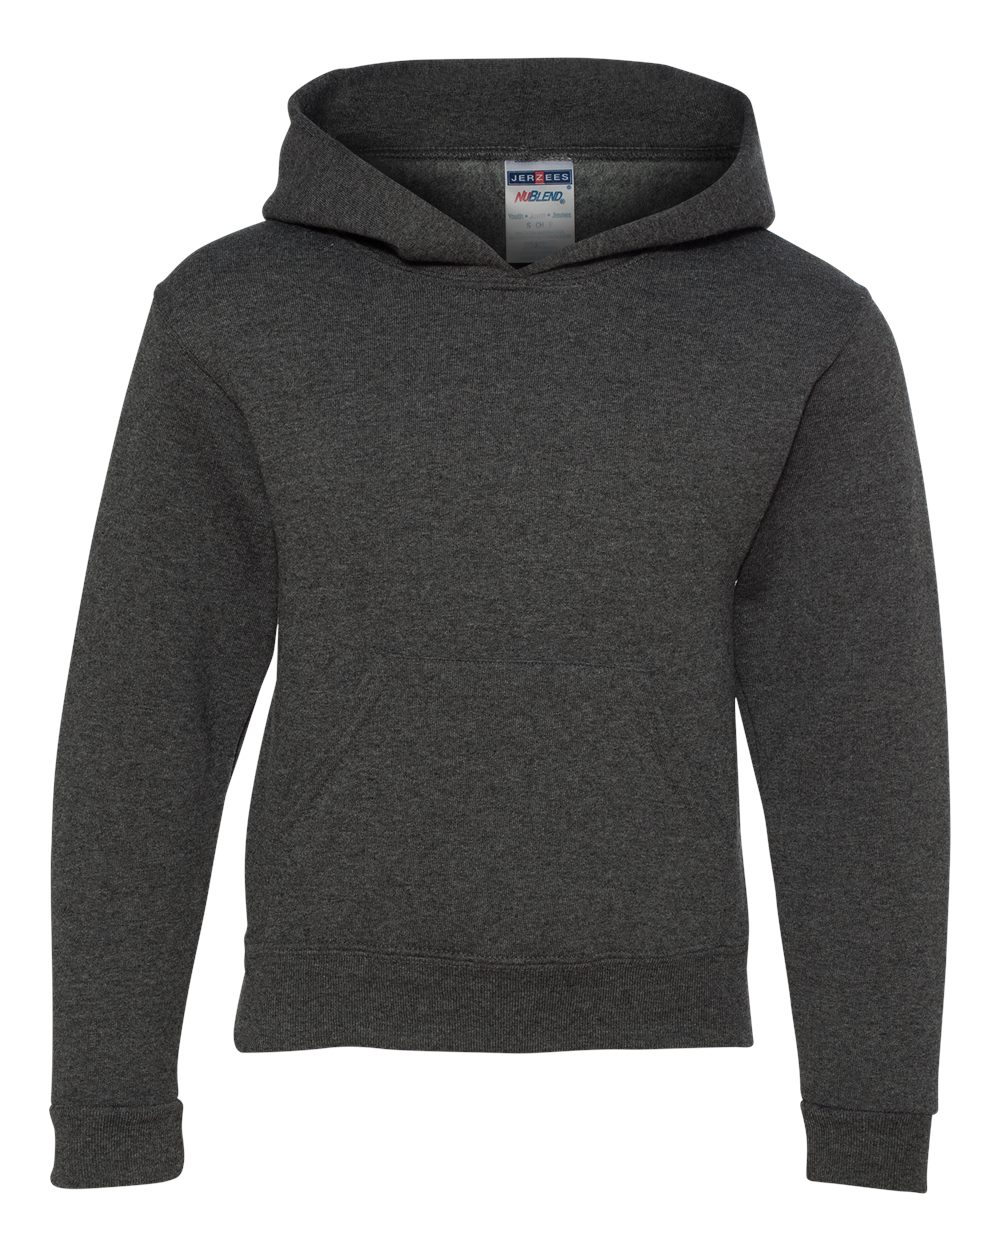 e3e55c641 Picture of Jerzees Nublend Youth Pullover Hooded Sweatshirt. $28.90 ea. for  12 - $17.89 for 1000 * based on a 1-colour Print on Front